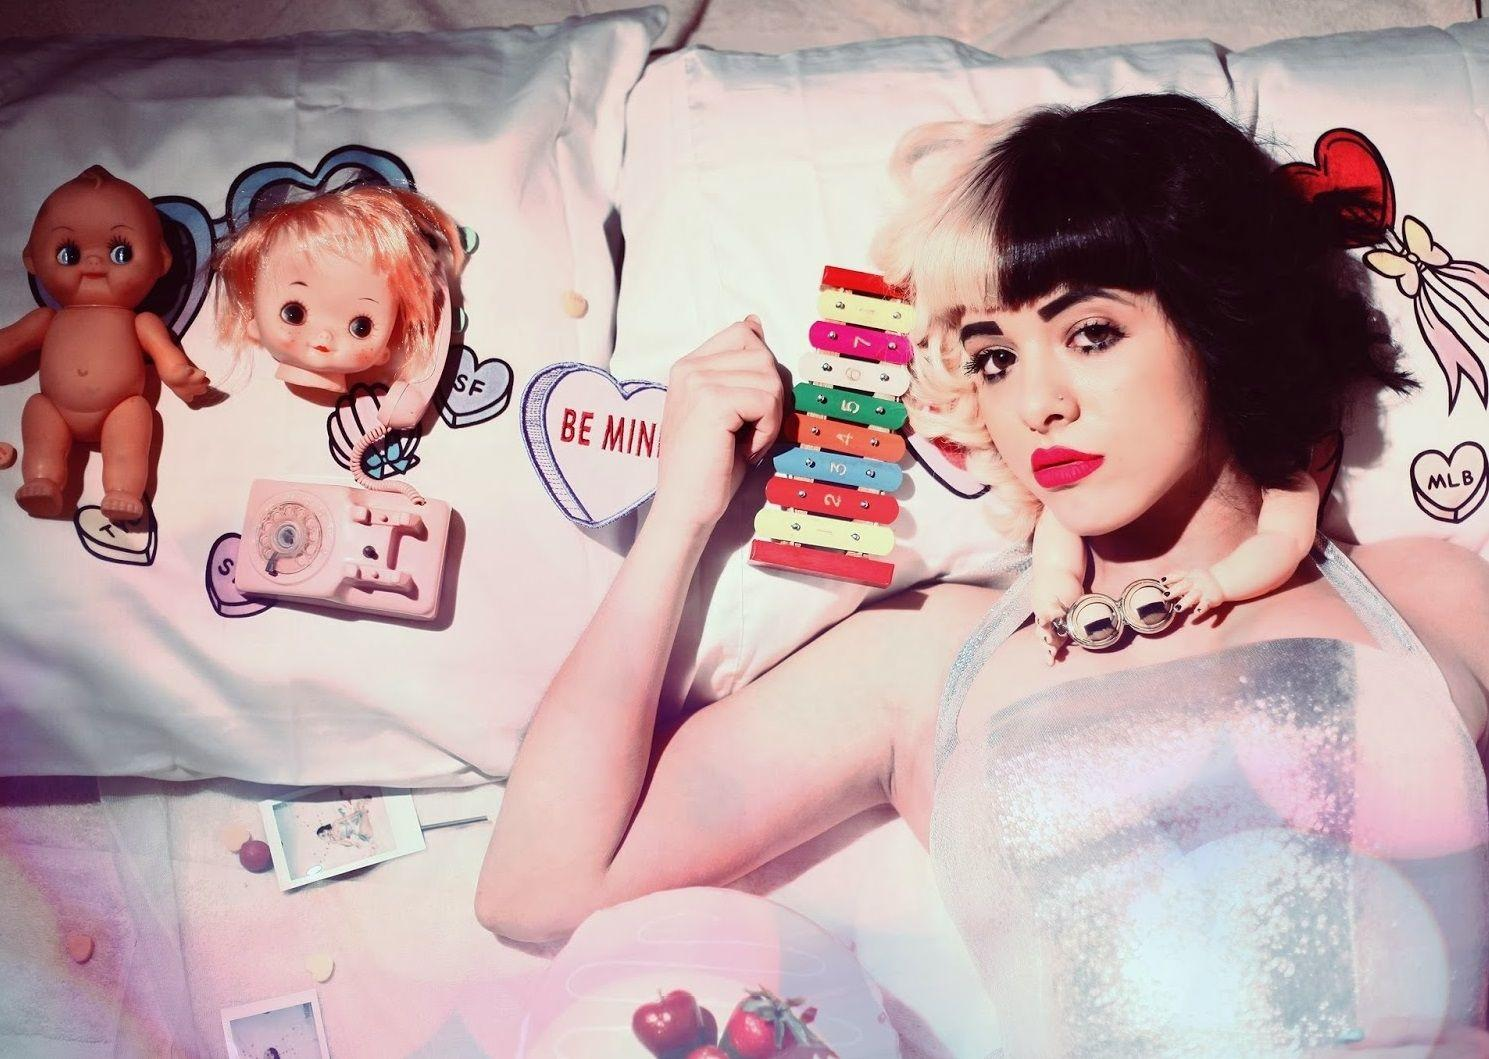 Melanie Martinez HD Wallpapers